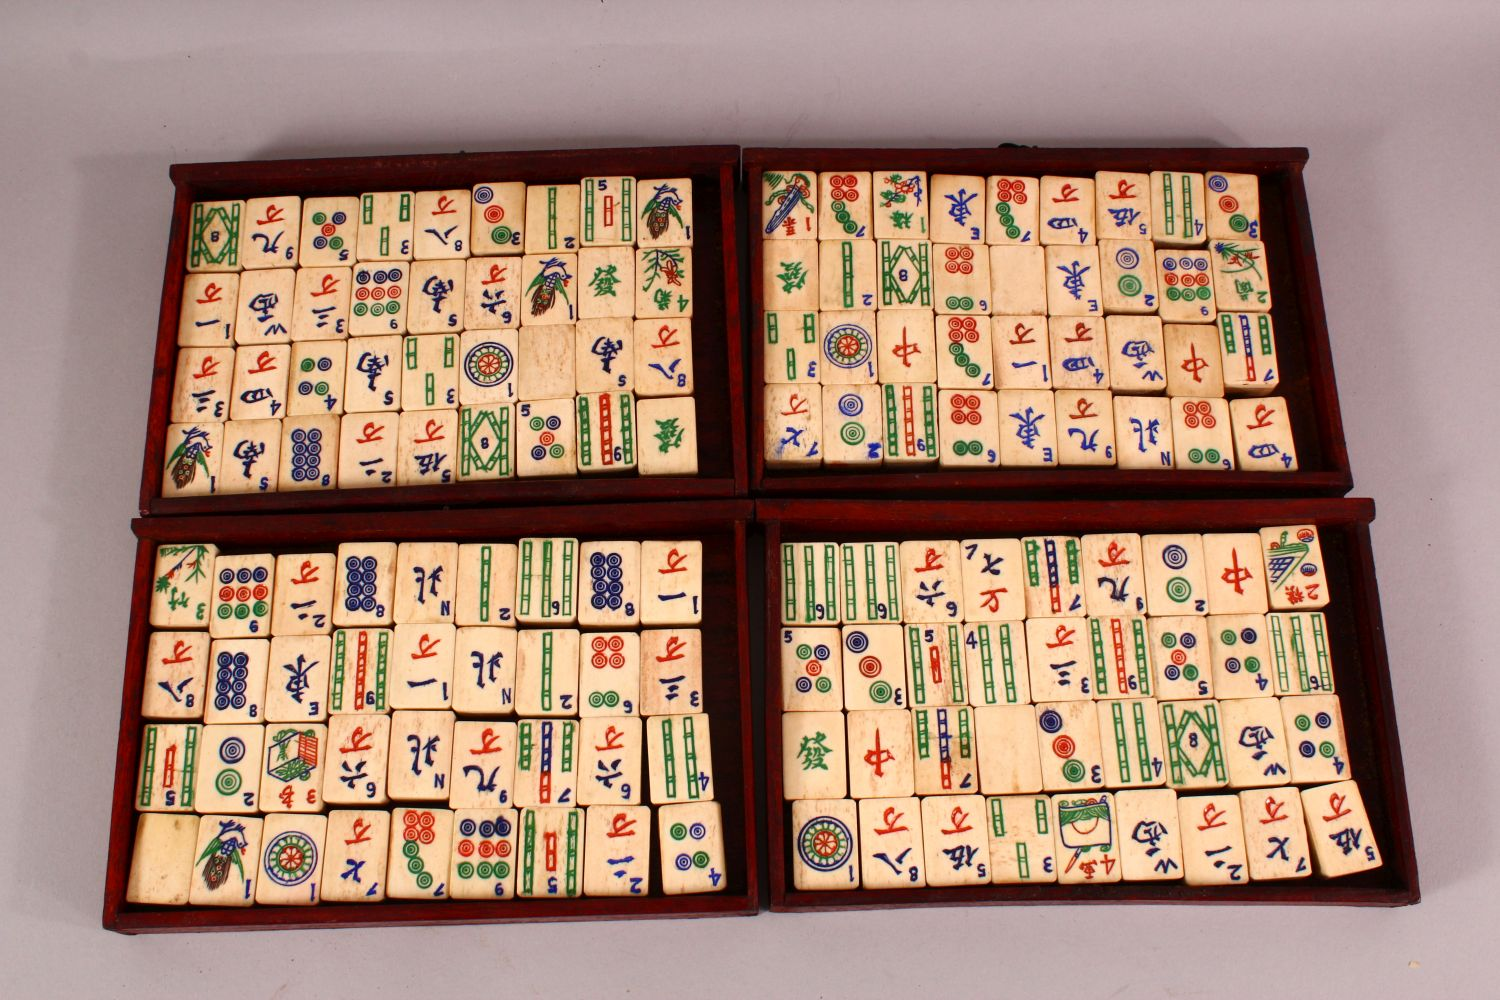 A CHINESE BAMBOO & BONE BOXED MAHJONG SET - comprising 56 drawers full of counters and sticks, - Image 2 of 6